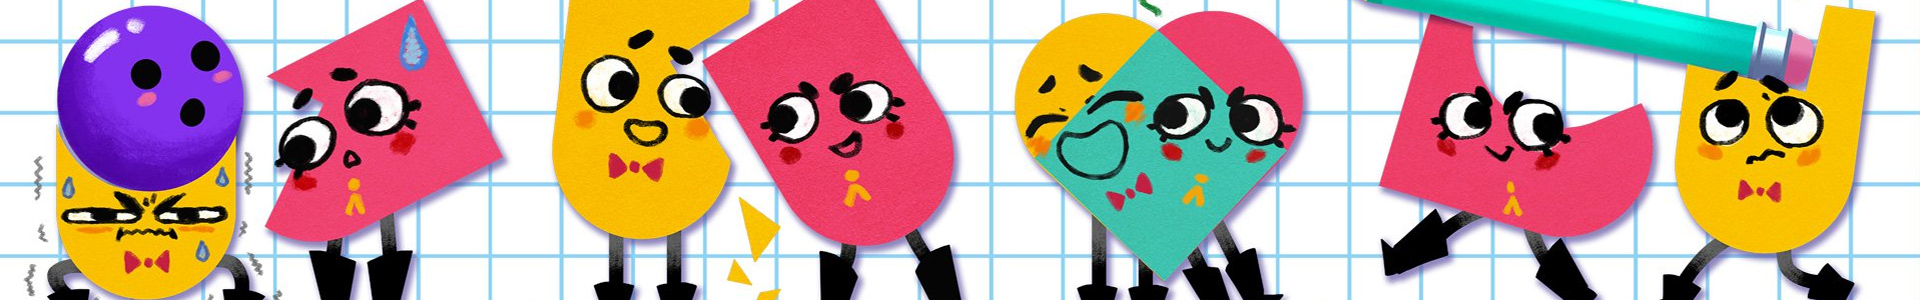 snipperclips-cut-it-out-together-banner